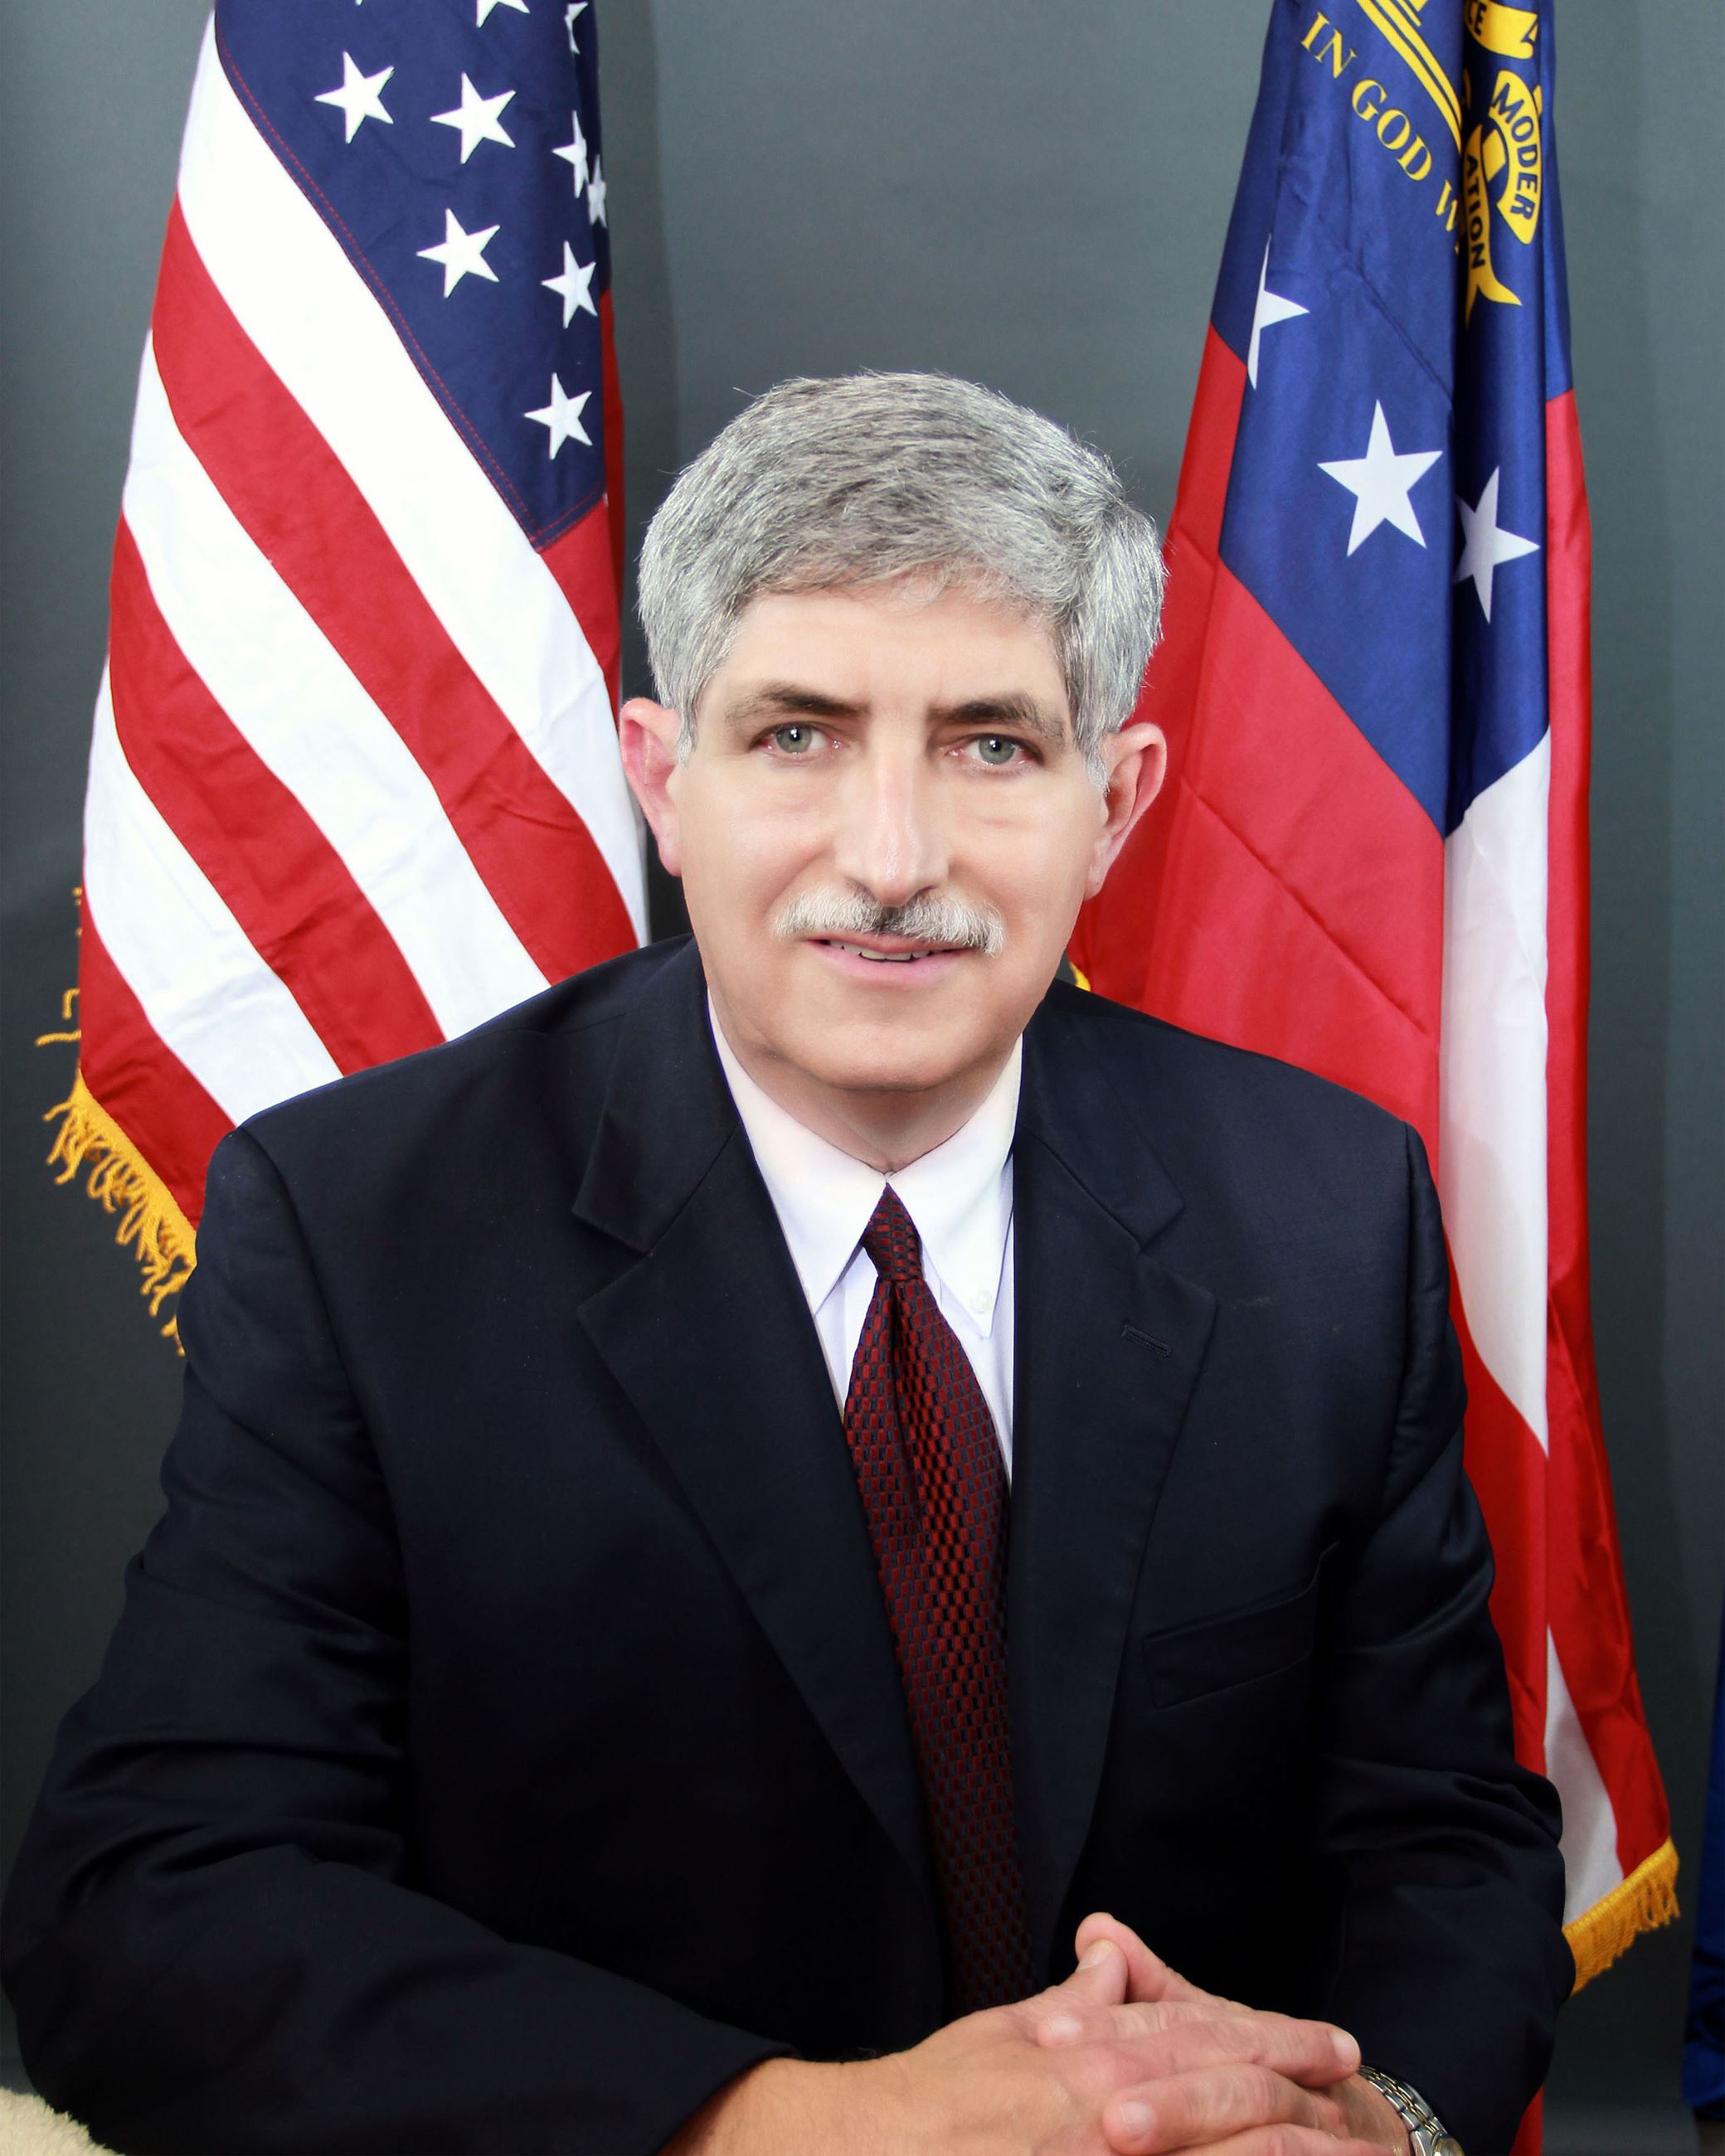 Alderman Miller